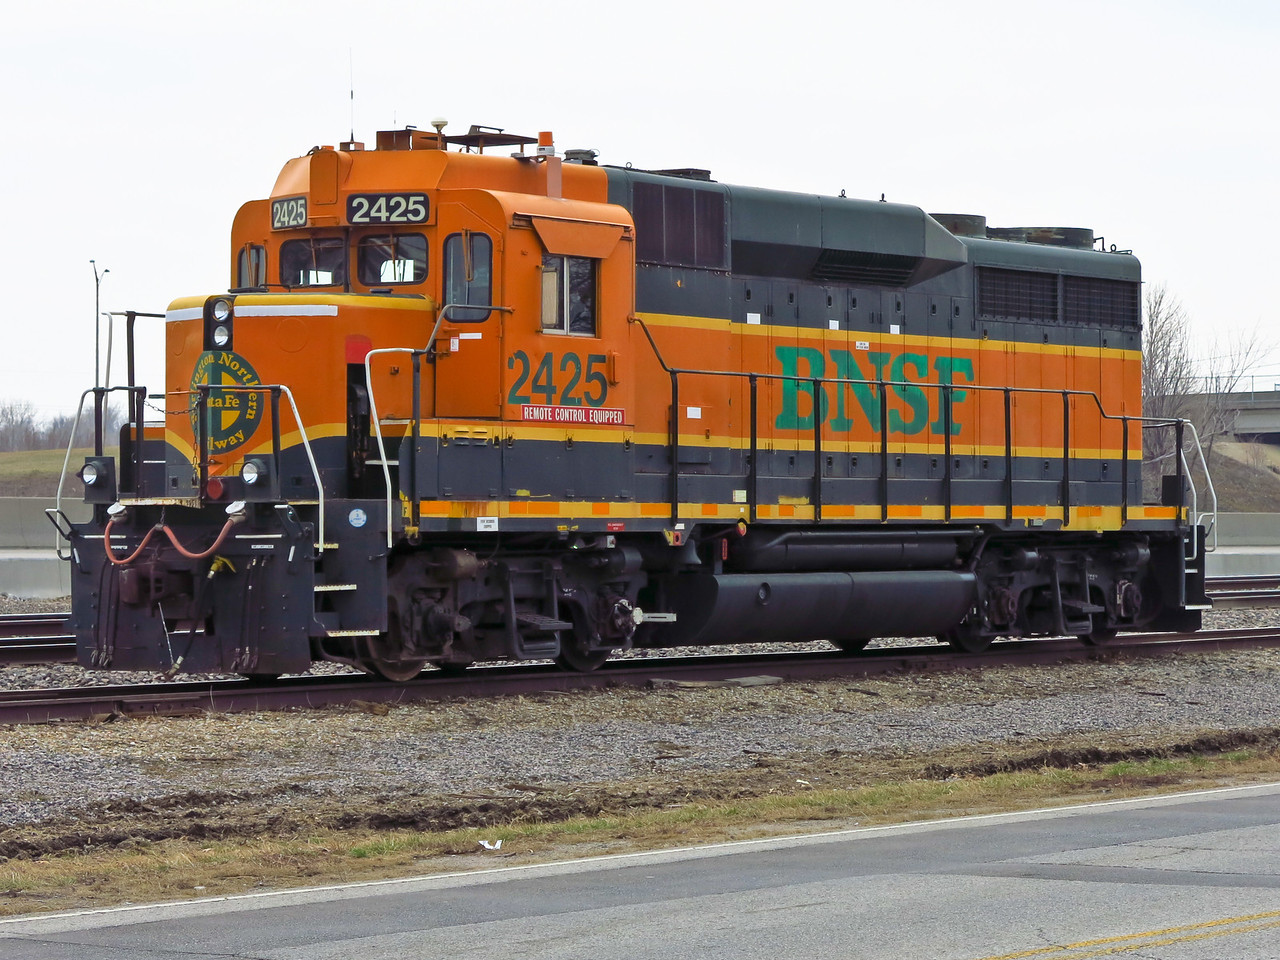 Nathan's practical education is likely to include working with this GP-30 locomotive located near a small yard in neighboring Lenexa, Kansas.